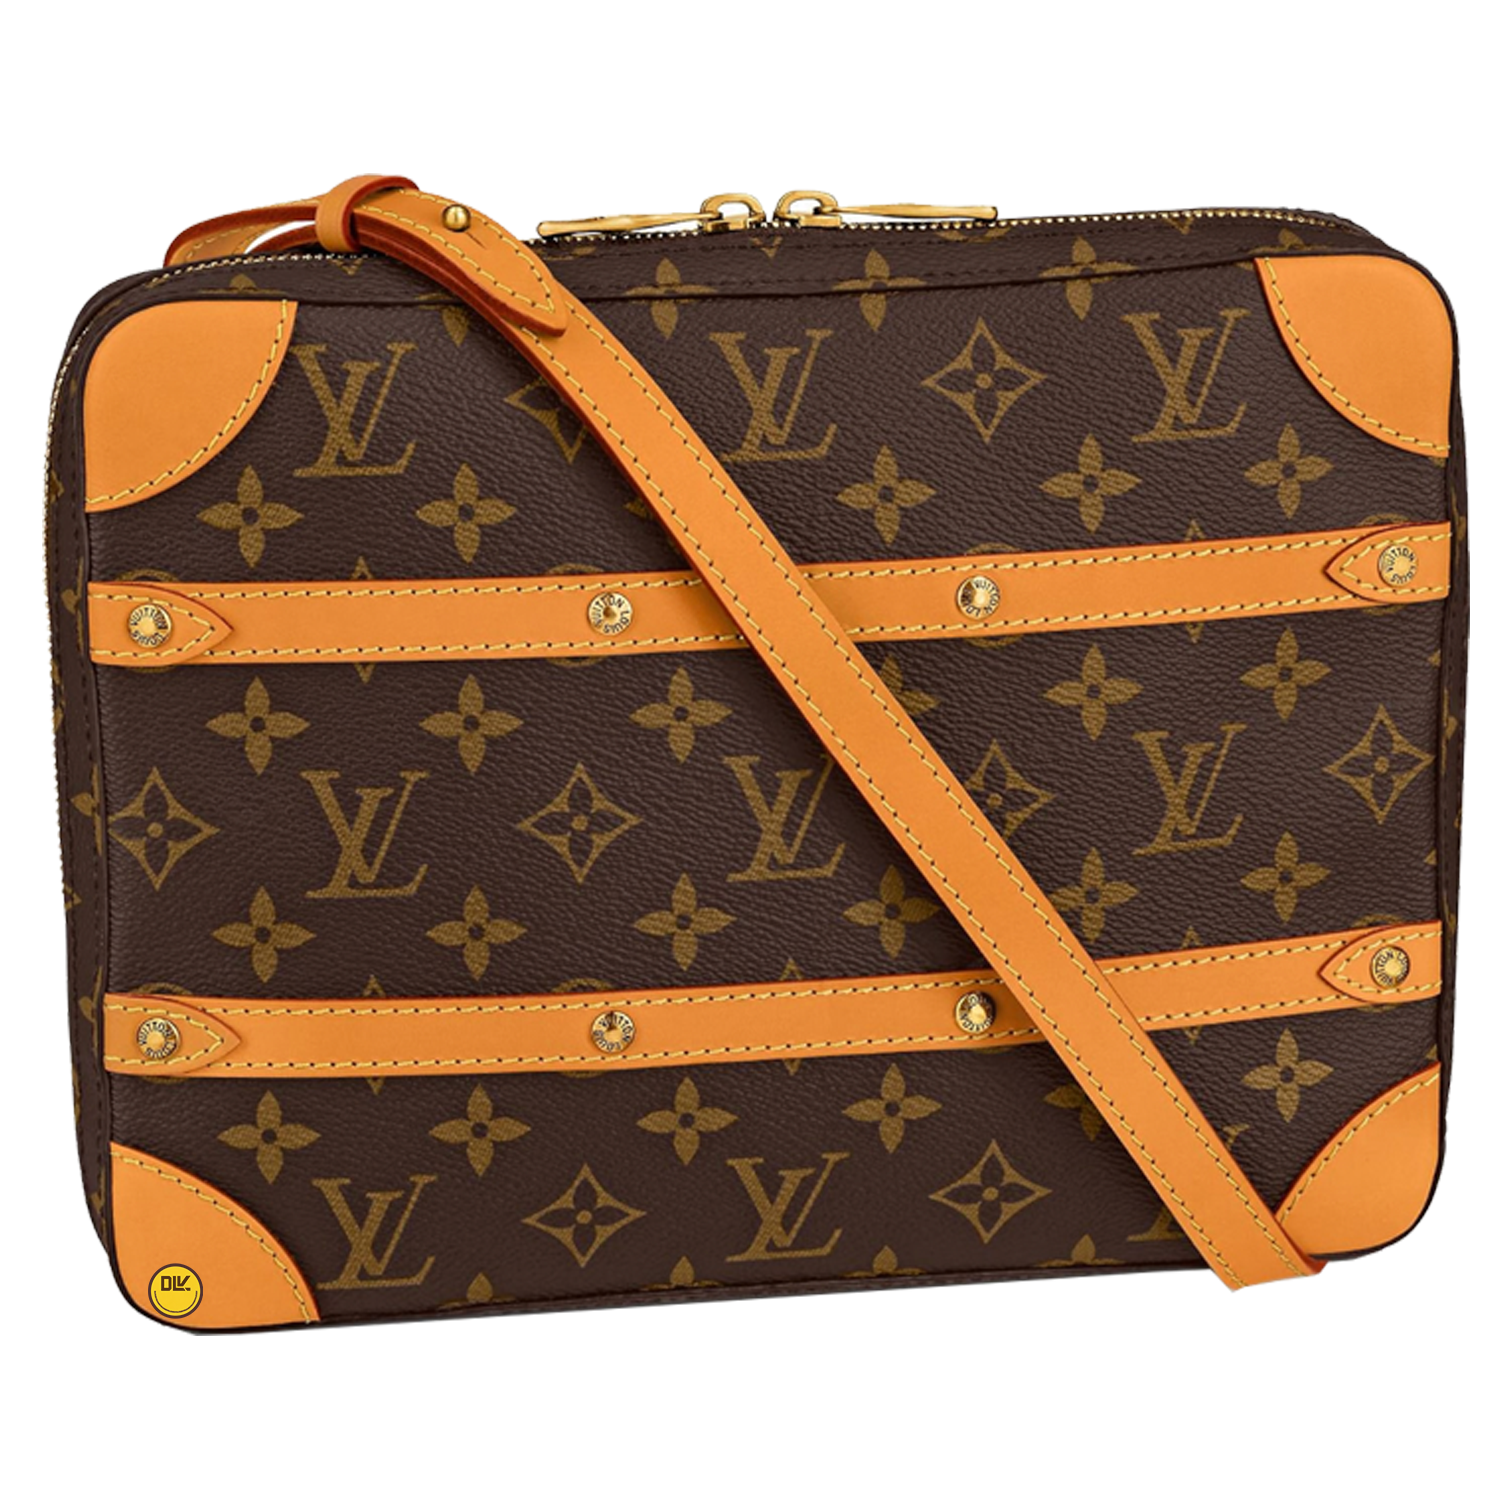 SOFT TRUNK MESSENGER pM - €1300 $1920M68494MONOGRAM LEGACY